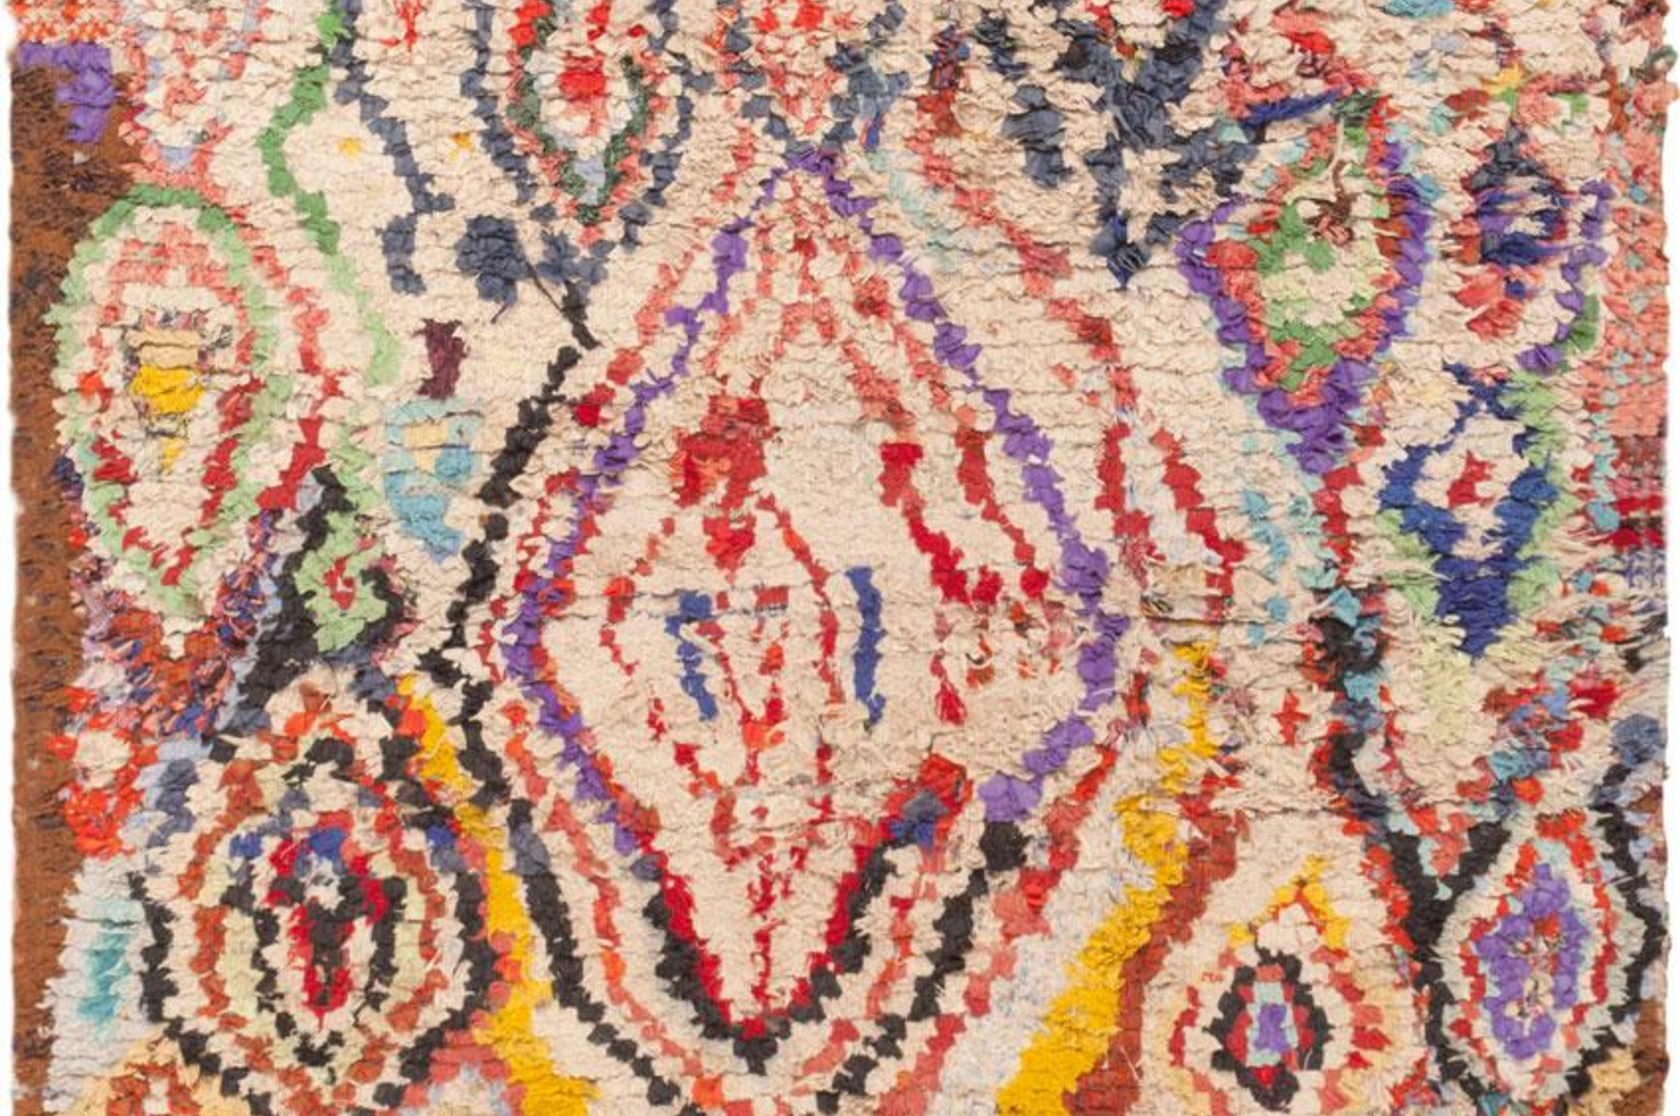 Vintage Moroccan Rug Interior Design Elements